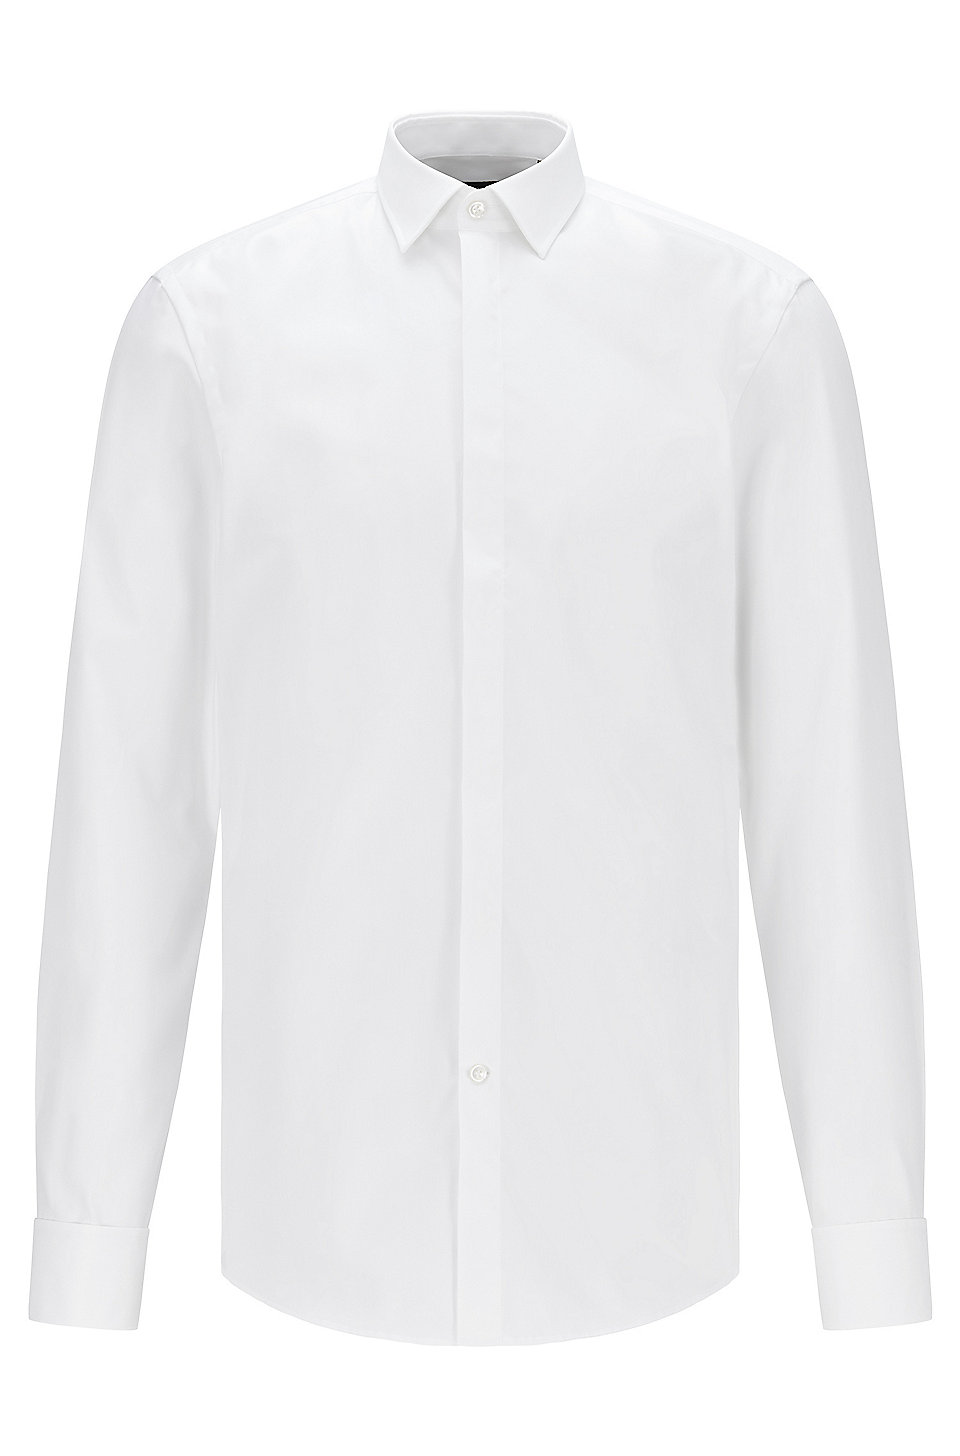 817a219d4 BOSS - Slim-fit cotton business shirt with double cuffs